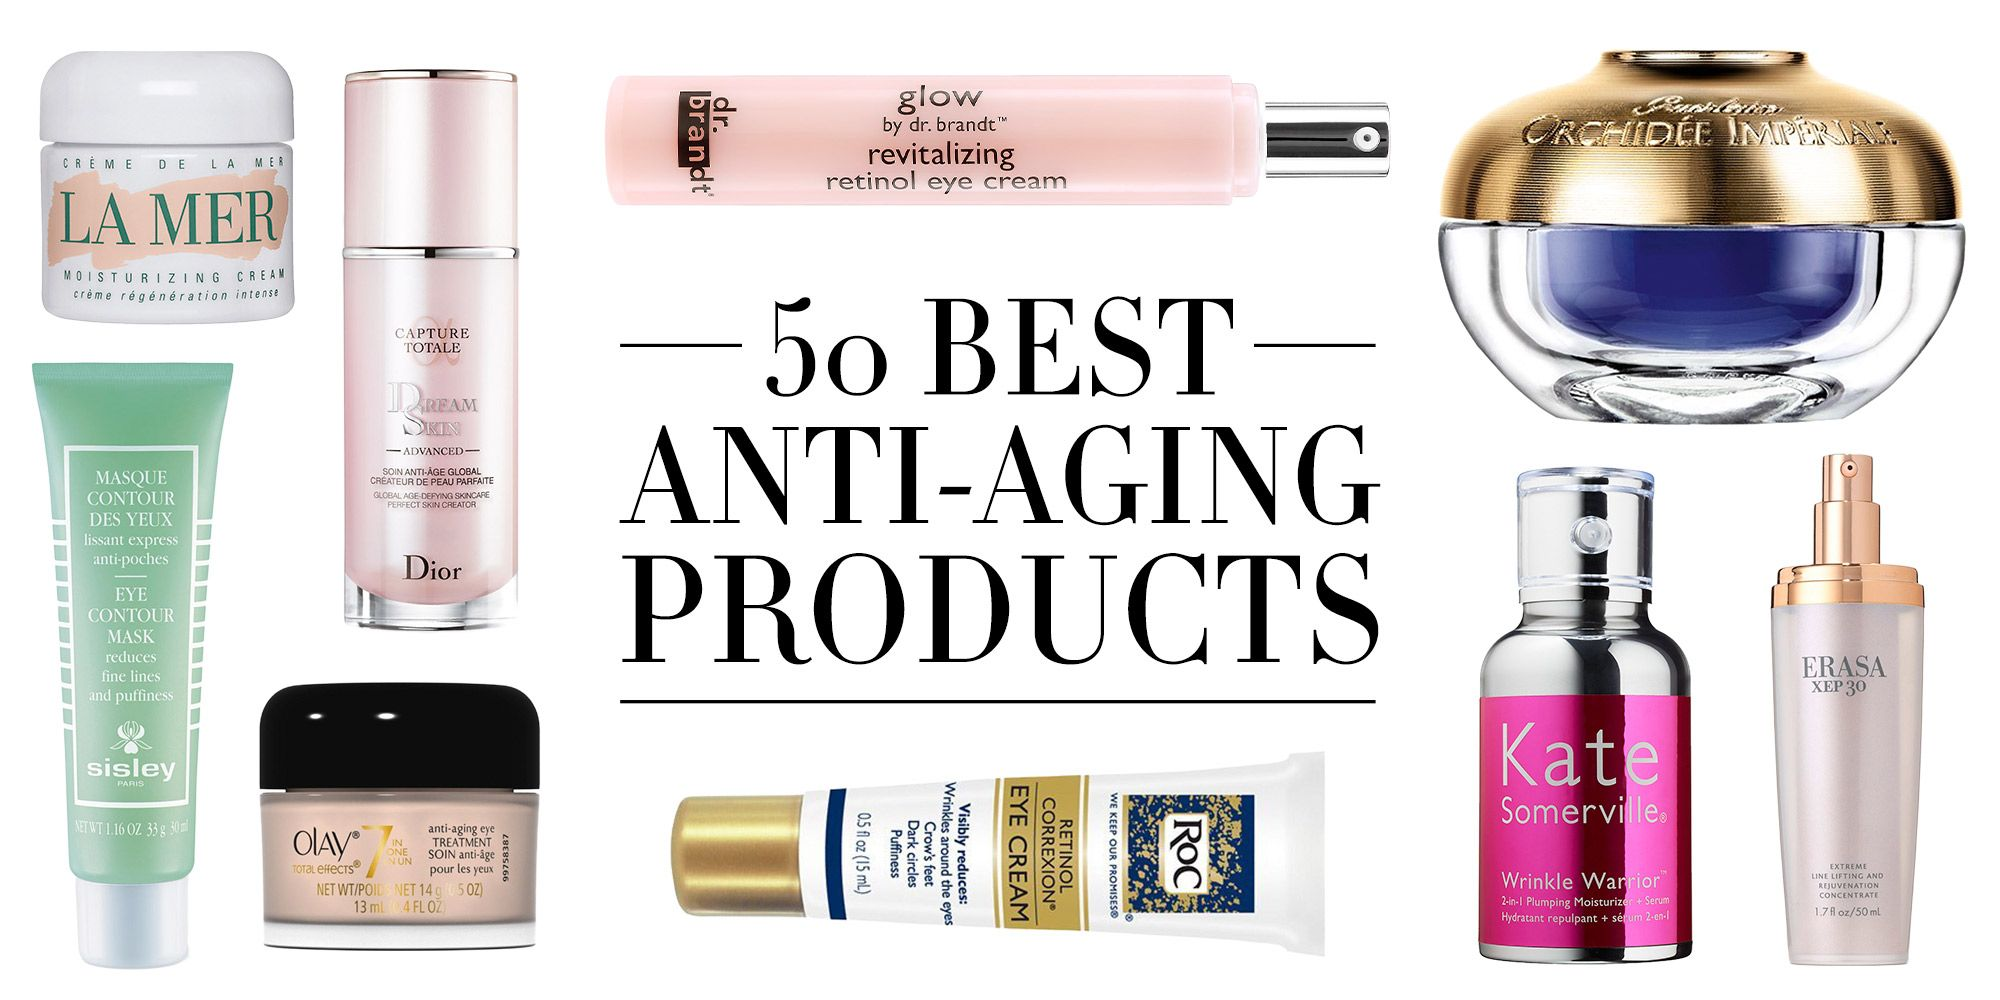 best anti aging products for 50s